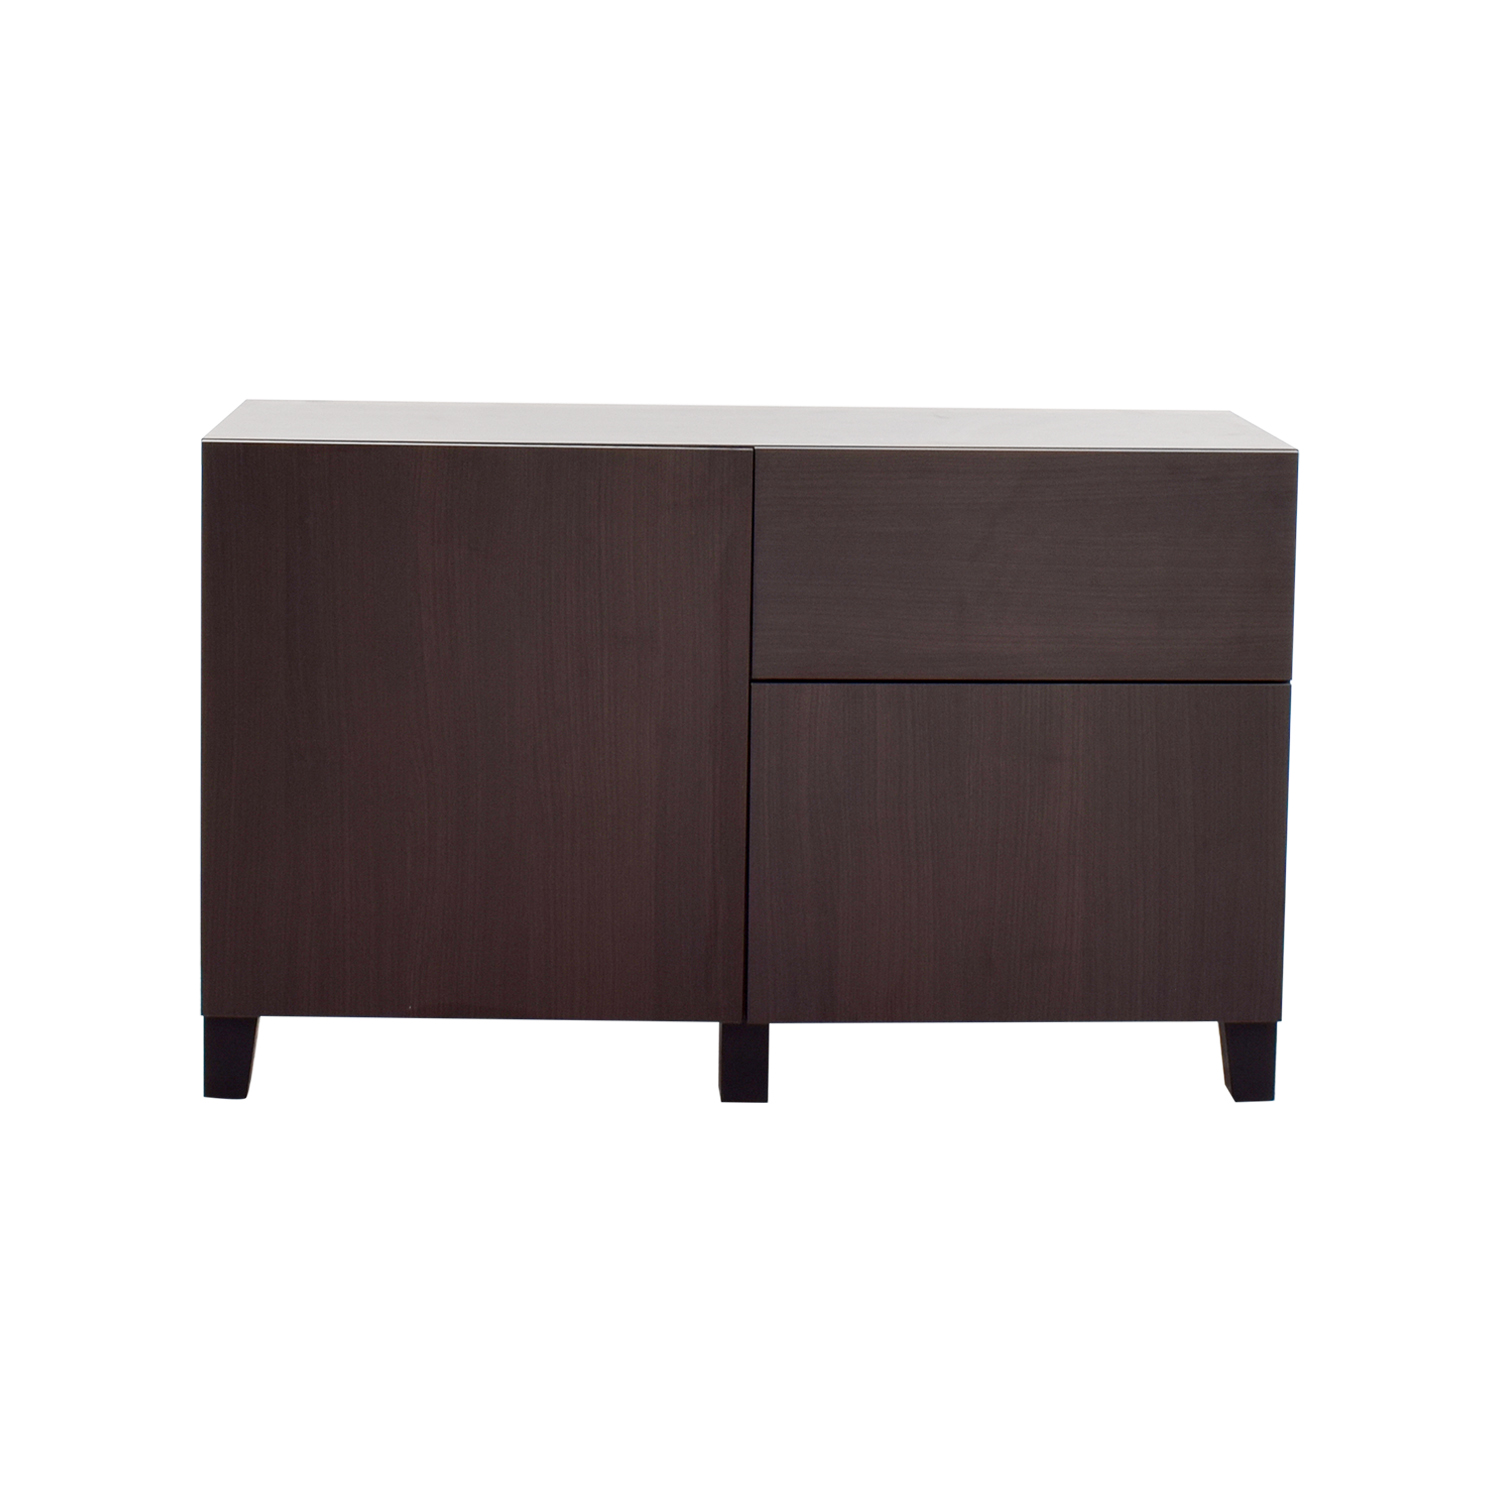 IKEA IKEA Dark Brown Storage Sideboard for sale